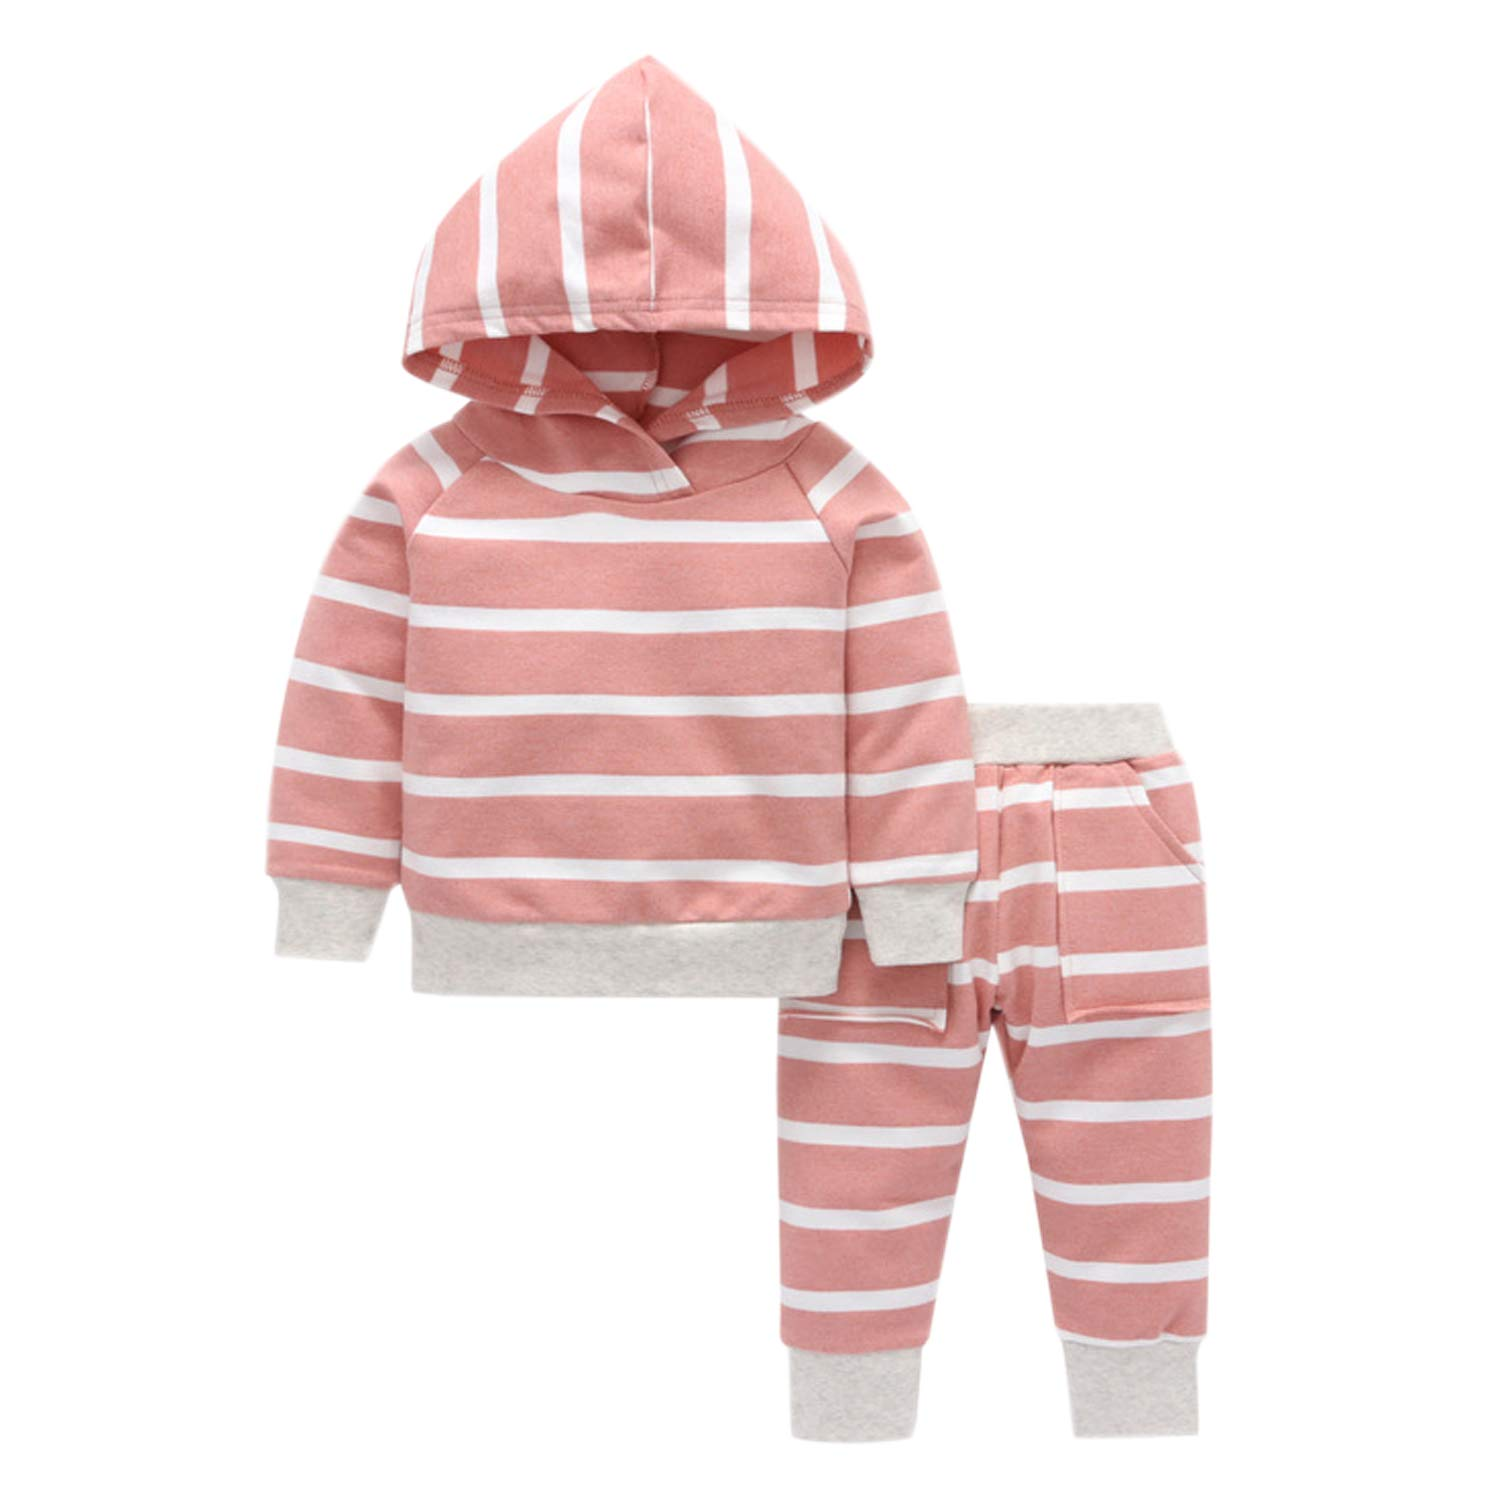 Newborn Baby Boys Girls 2Piece Hooded Top & Joggers Outfit Lovely Sweatshirt and Striped Pants Trousers Clothing Set